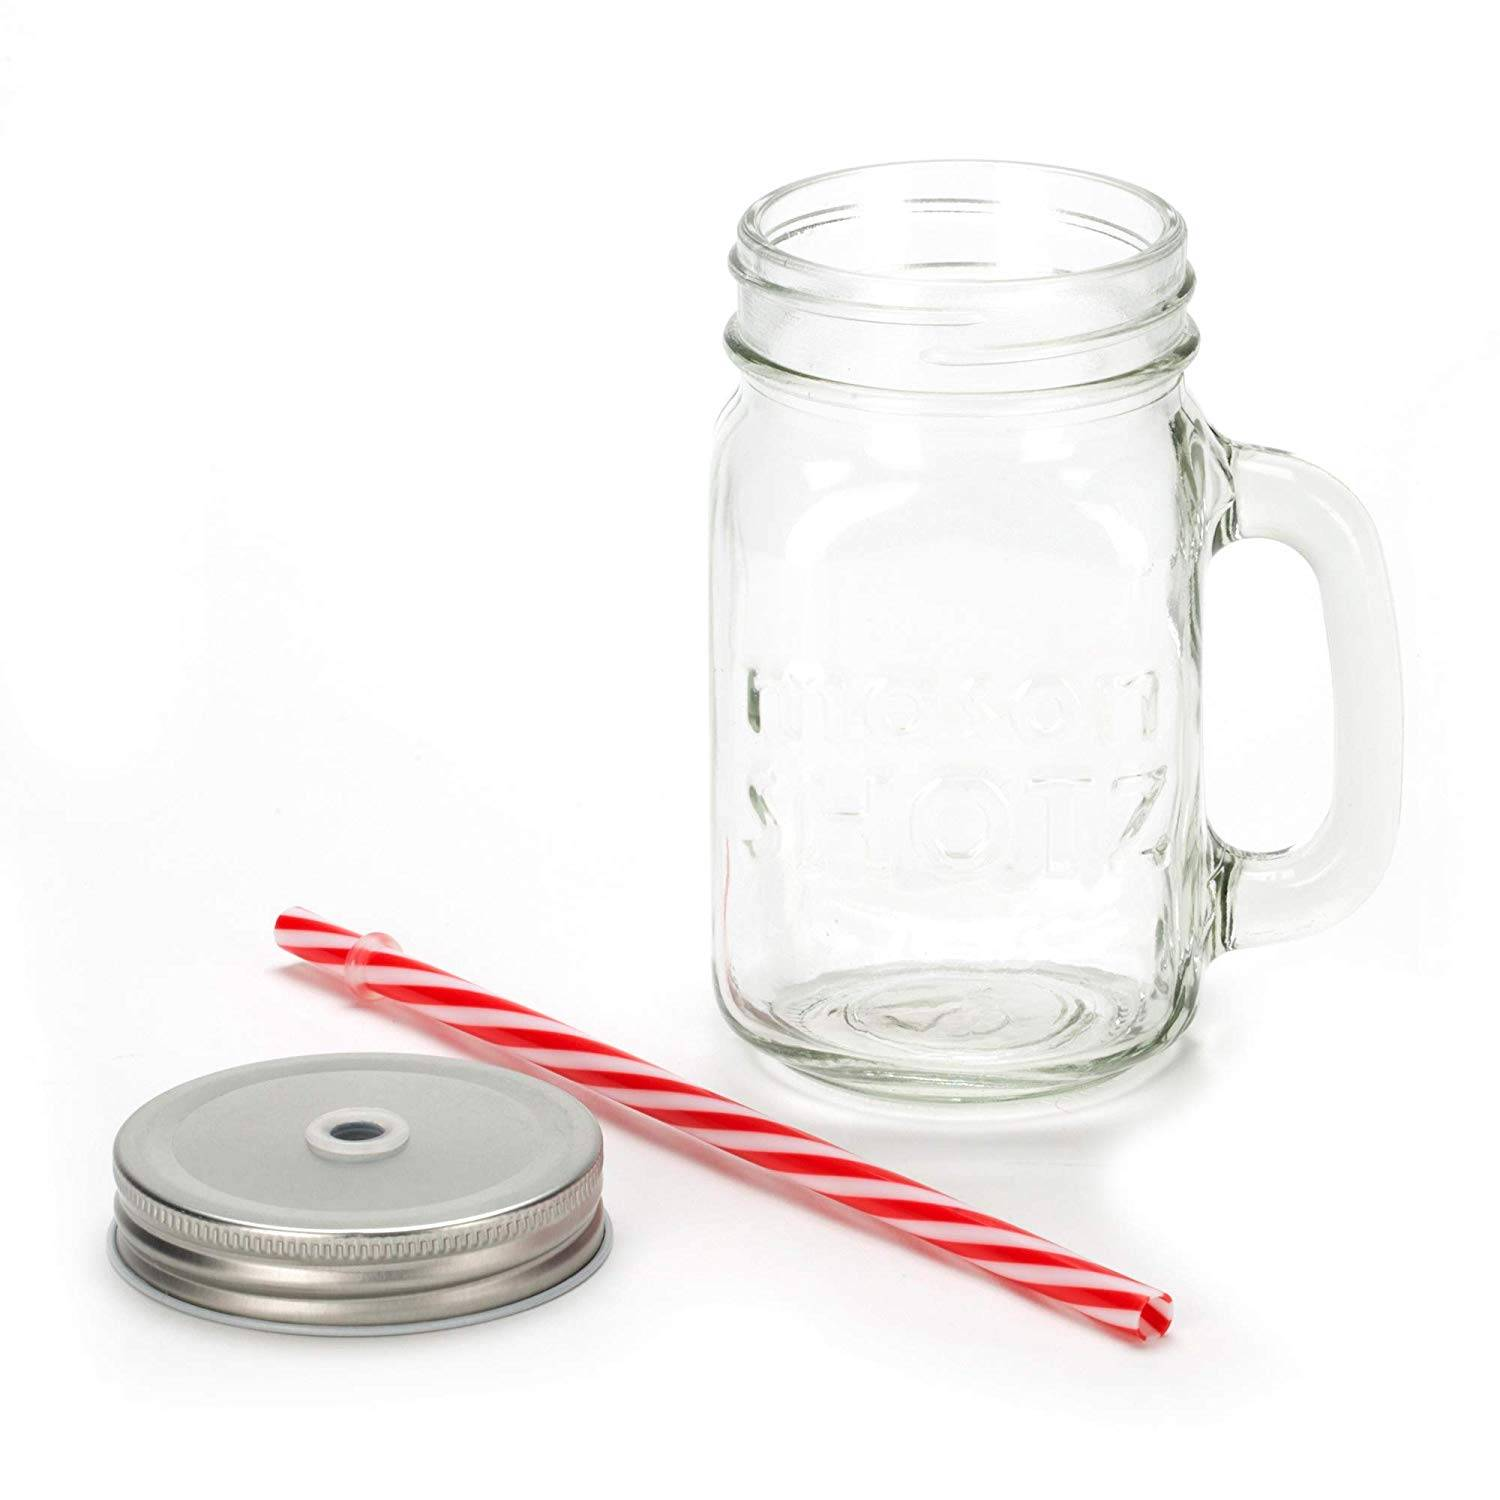 Low price for Glass Jar Wooden Lid -